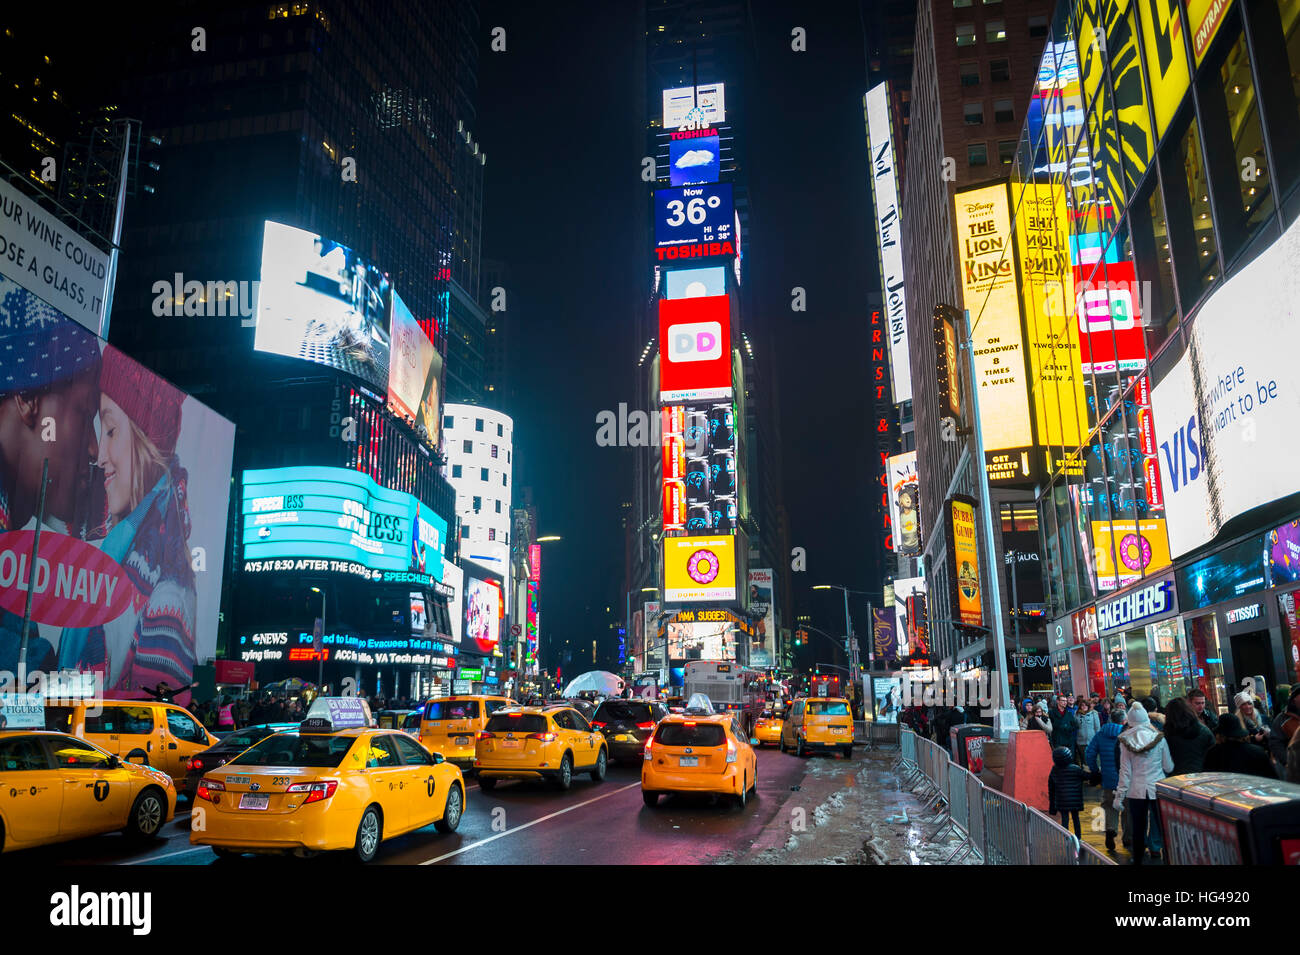 NEW YORK CITY - DECEMBER 17, 2016: Traffic and crowd fill Times Square as the city prepares for New Year's Eve. - Stock Image